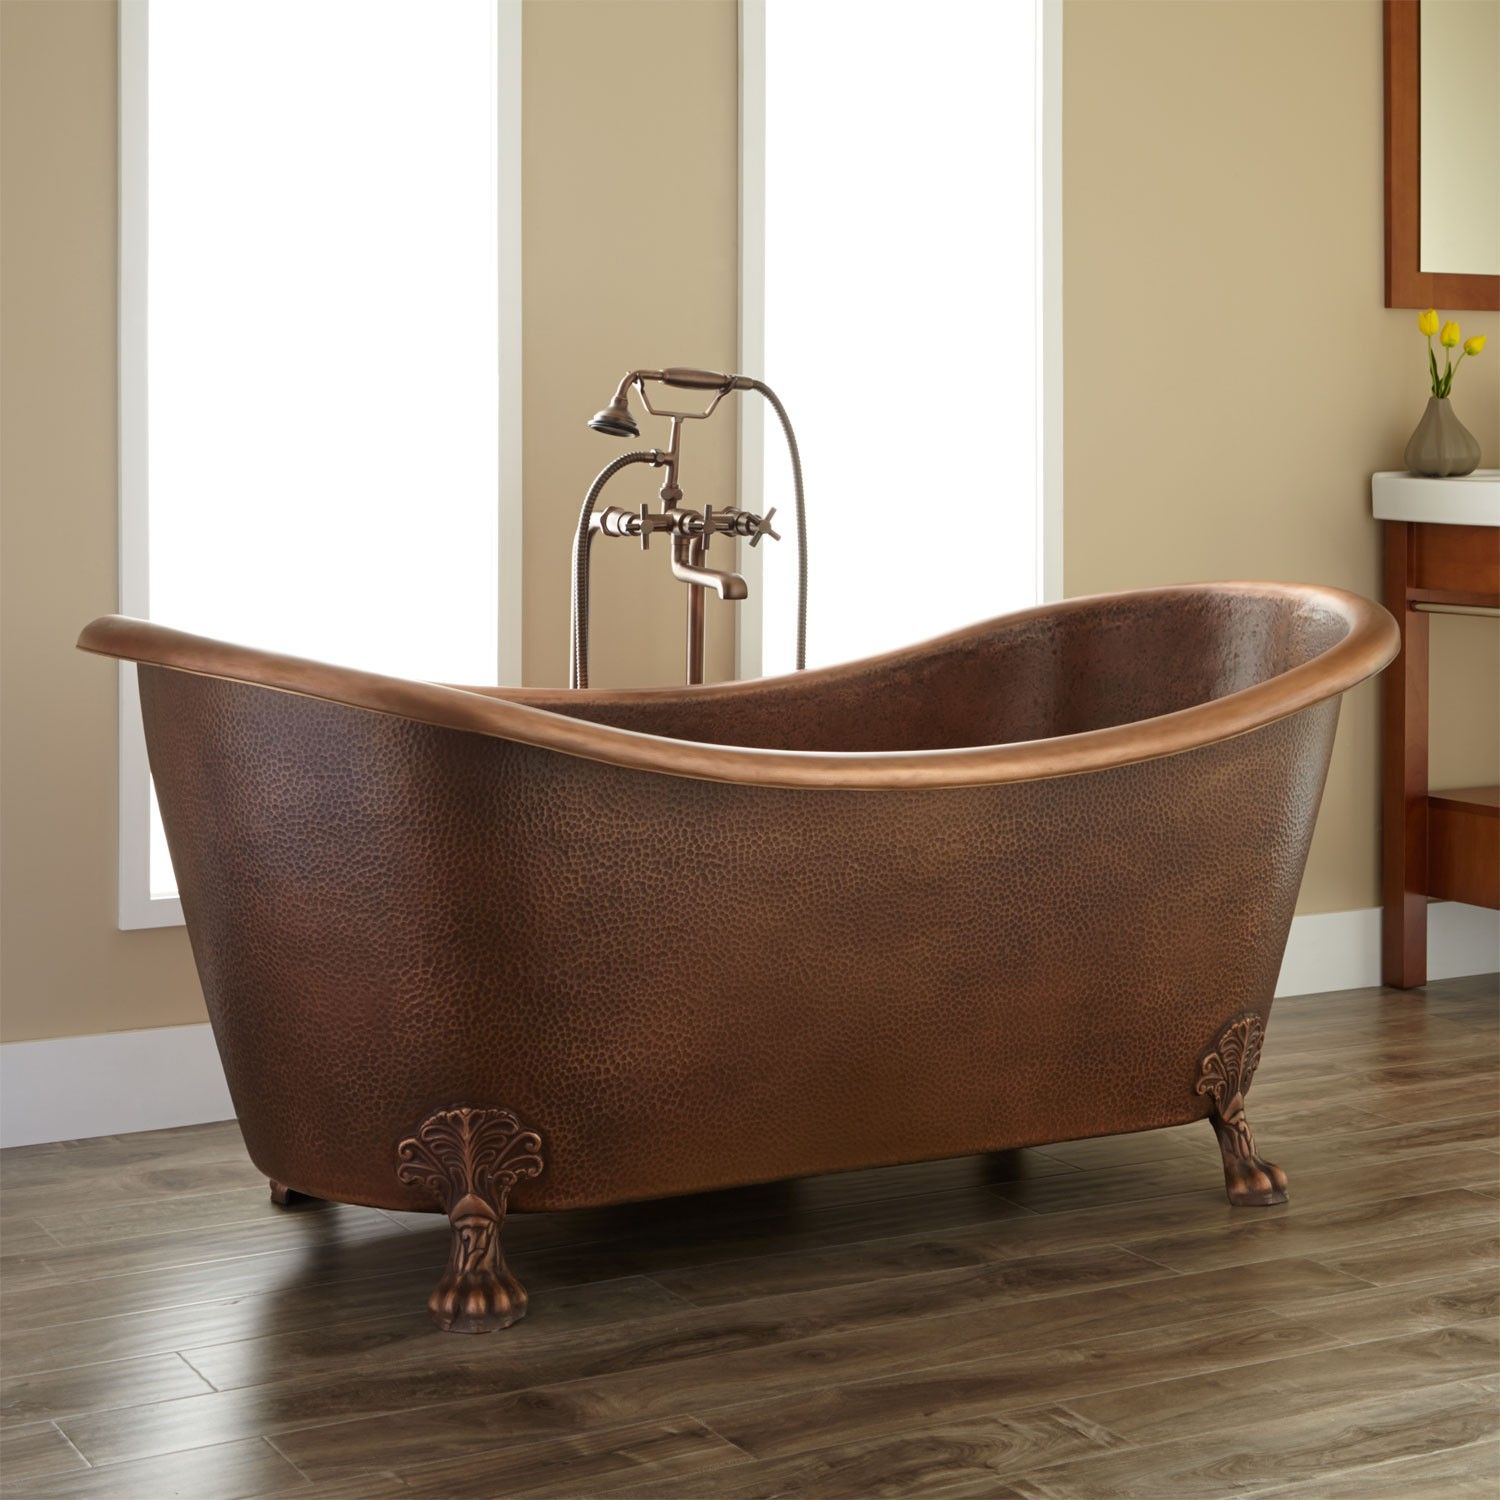 Claw foot tubs bathtubs isabella hammered copper for Bathroom with clawfoot tub